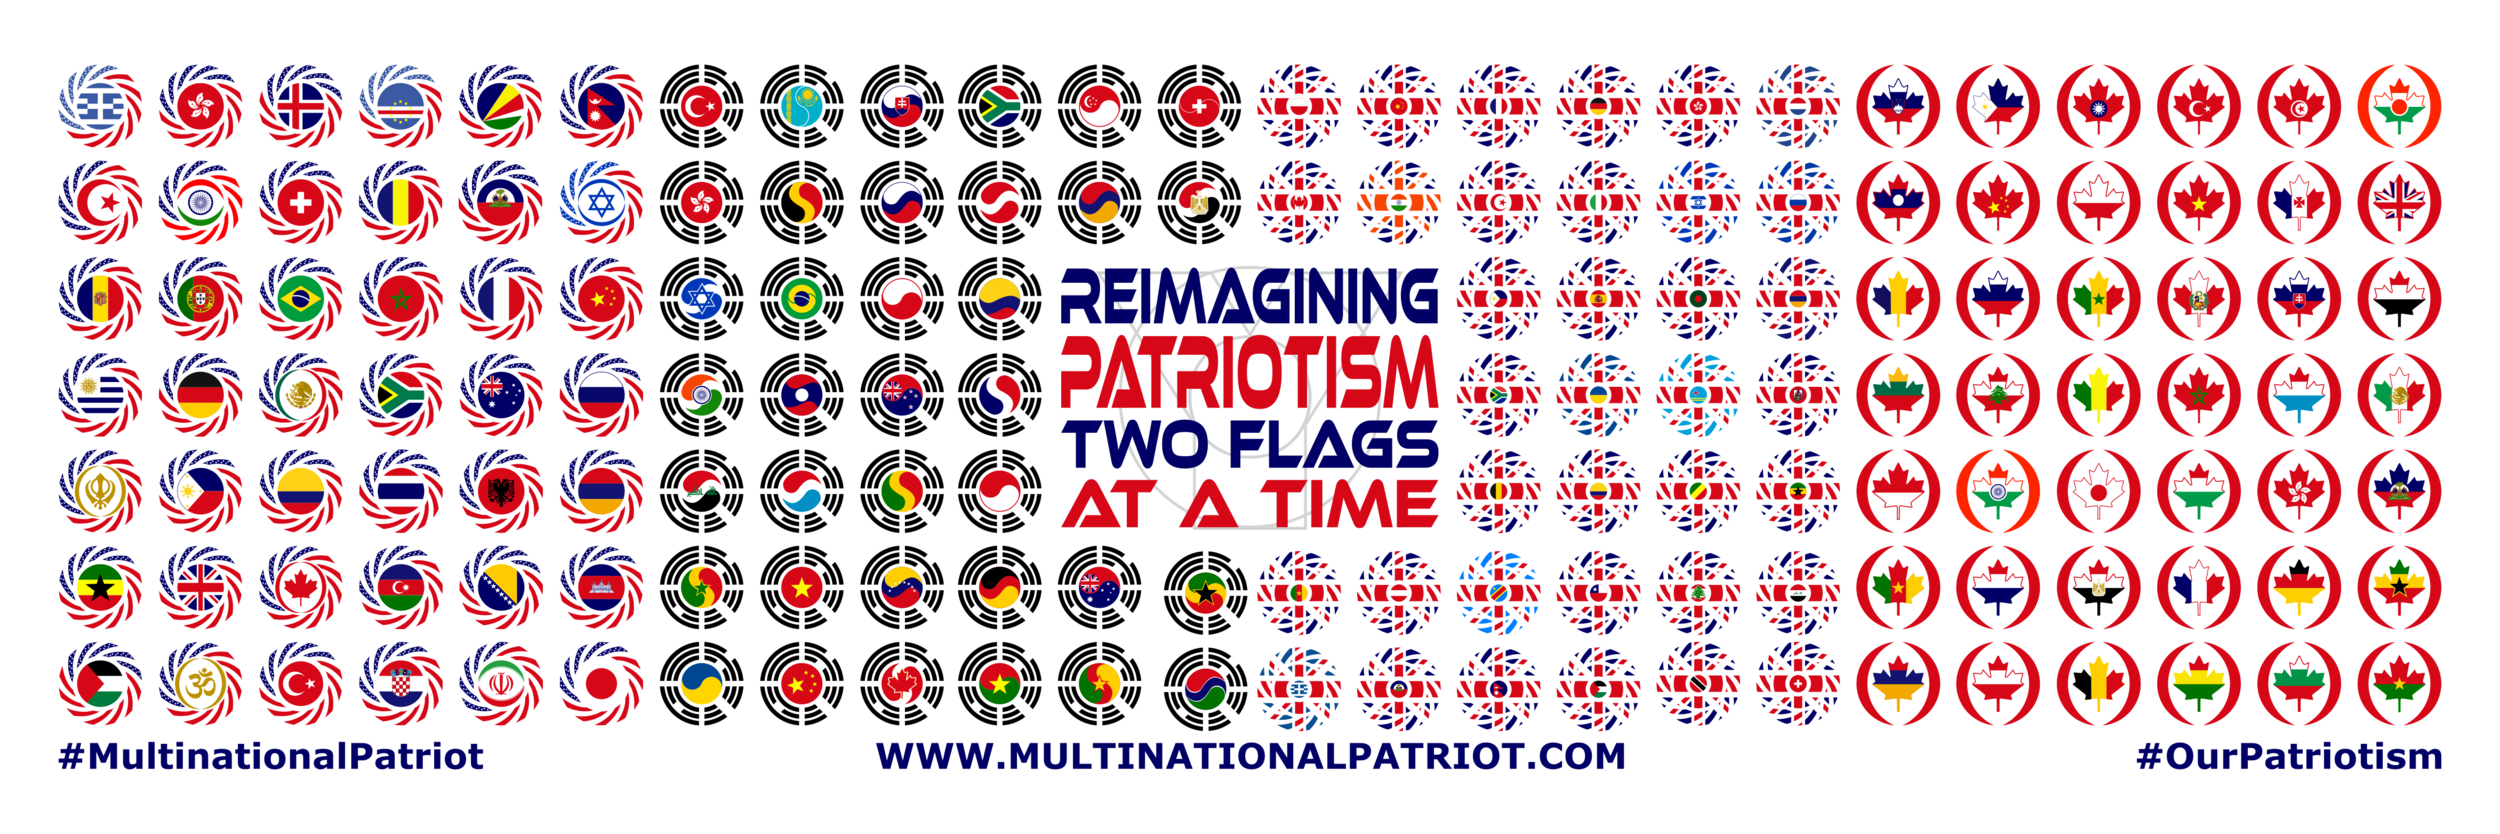 multinationalpatriotflag_honorboth_ourpatriotism_patriot_flag_twitter_banner2.png